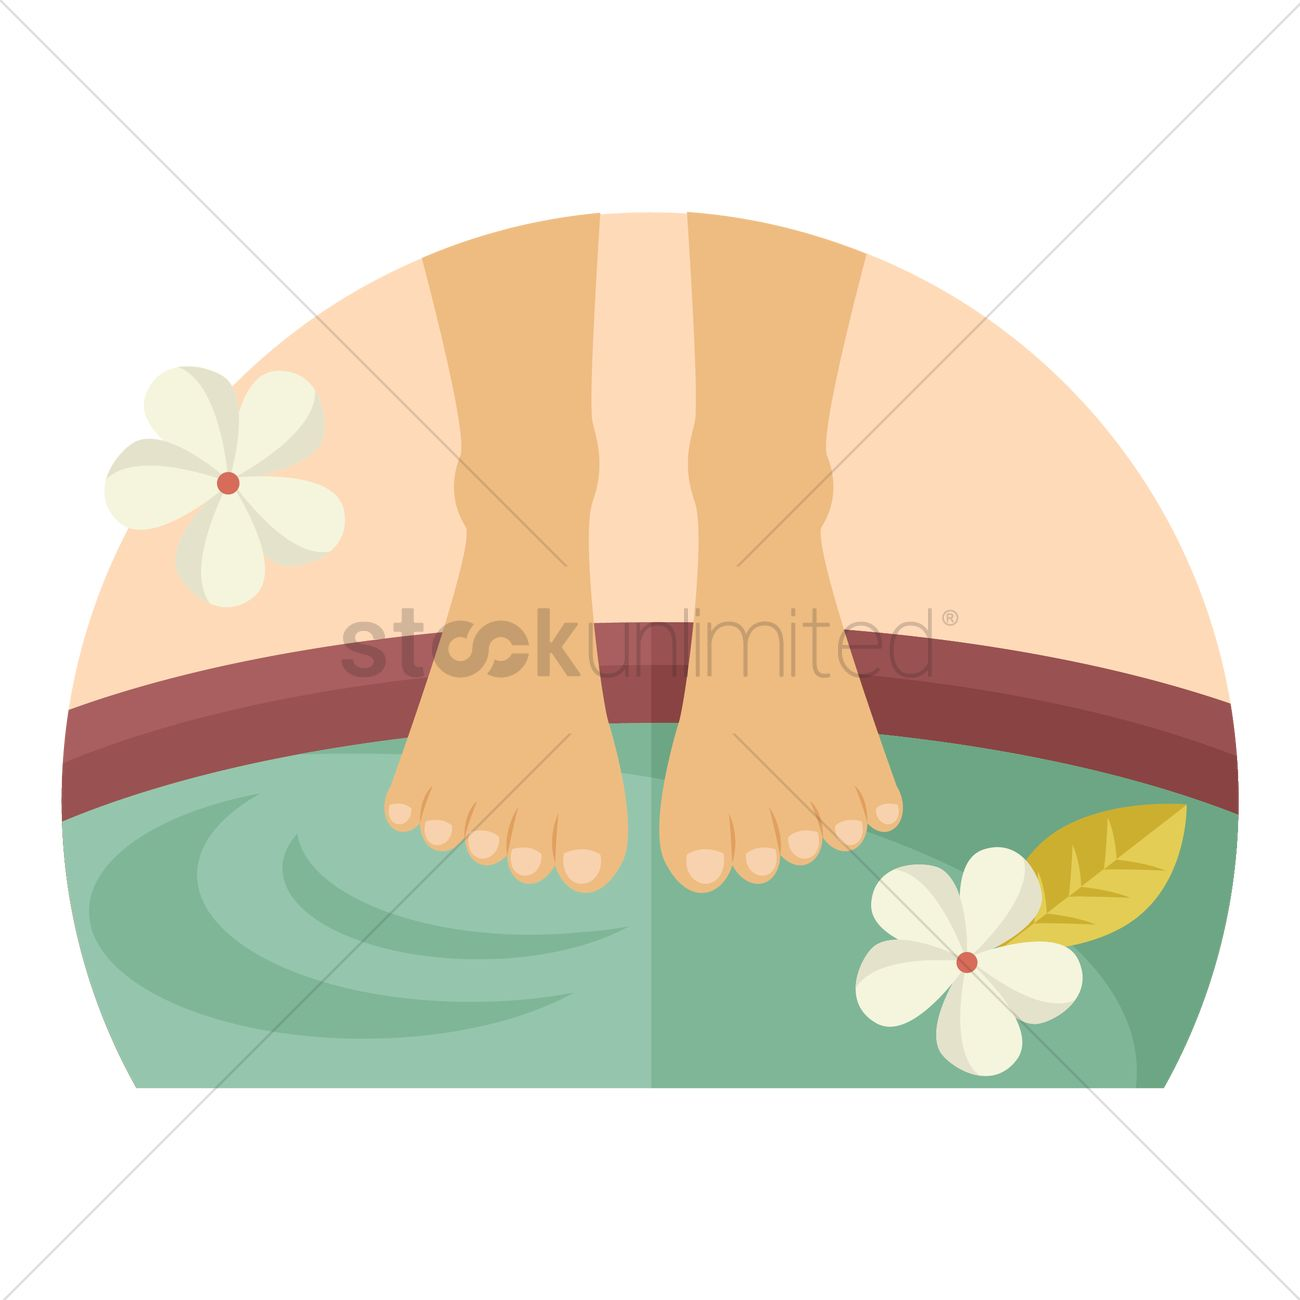 foot spa vector image 1309348 stockunlimited rh stockunlimited com manicure pedicure clipart free manicure pedicure clipart free